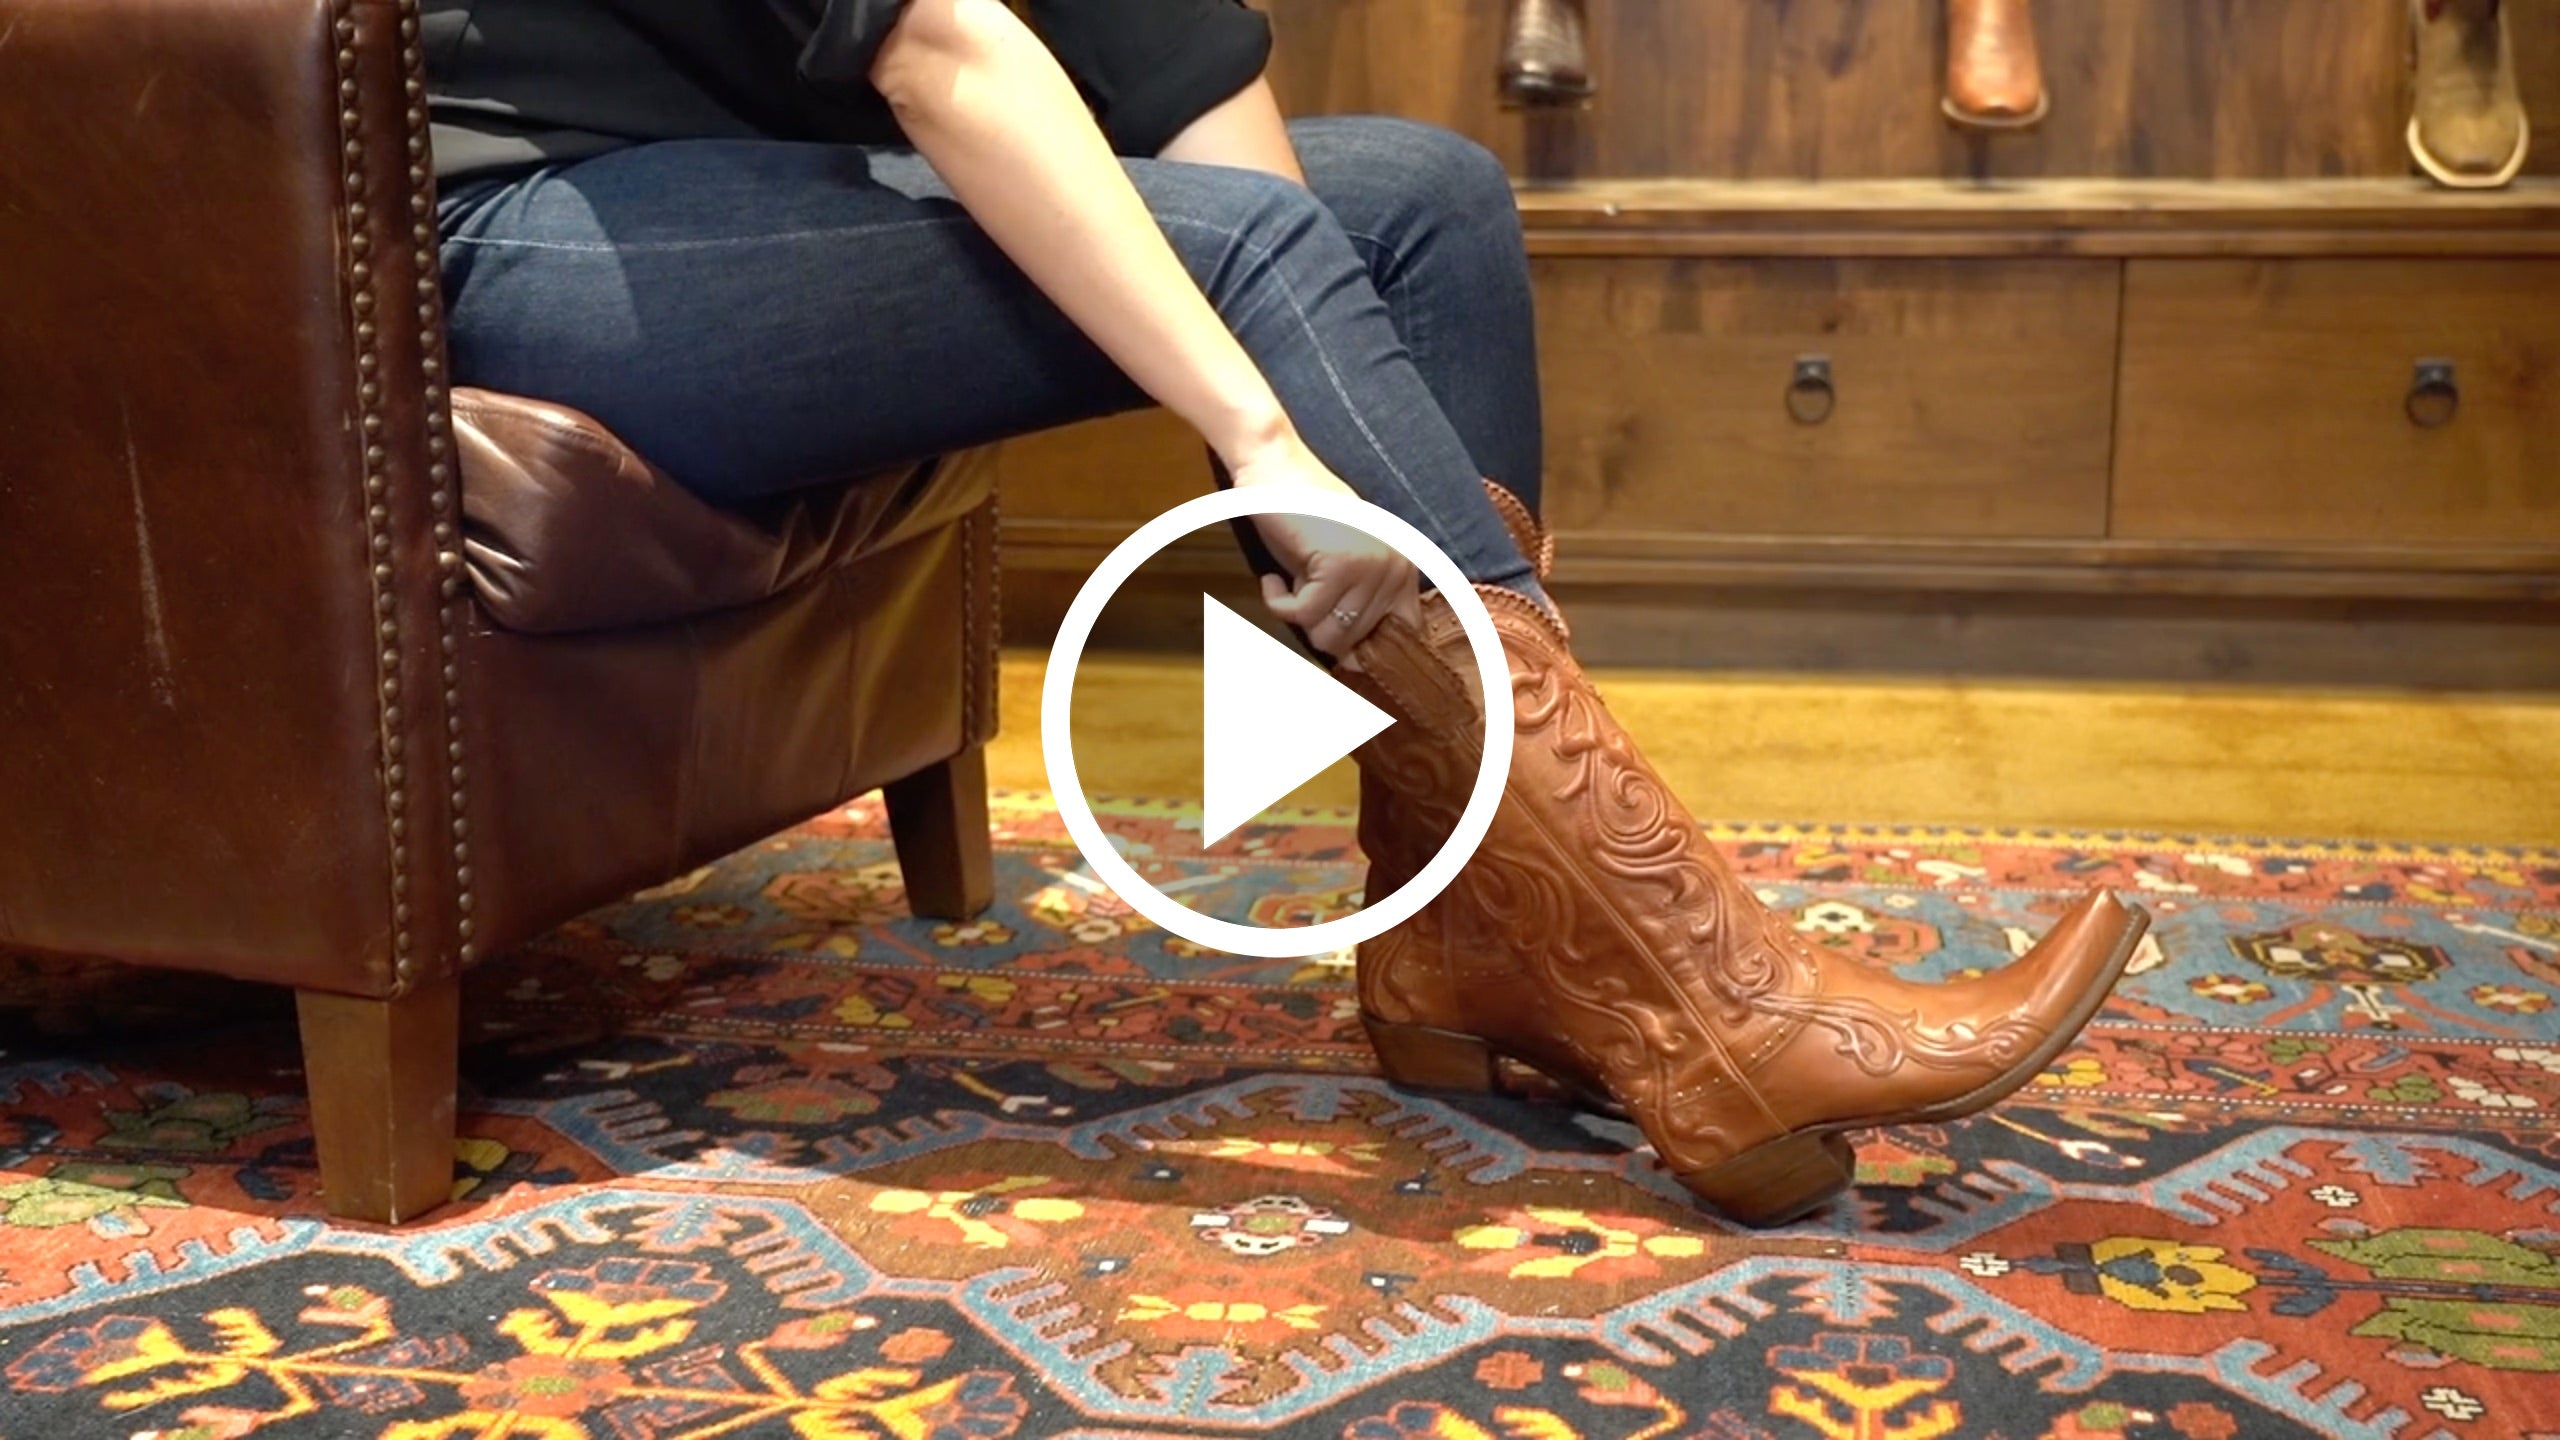 Play video for trying on a cowboy boot